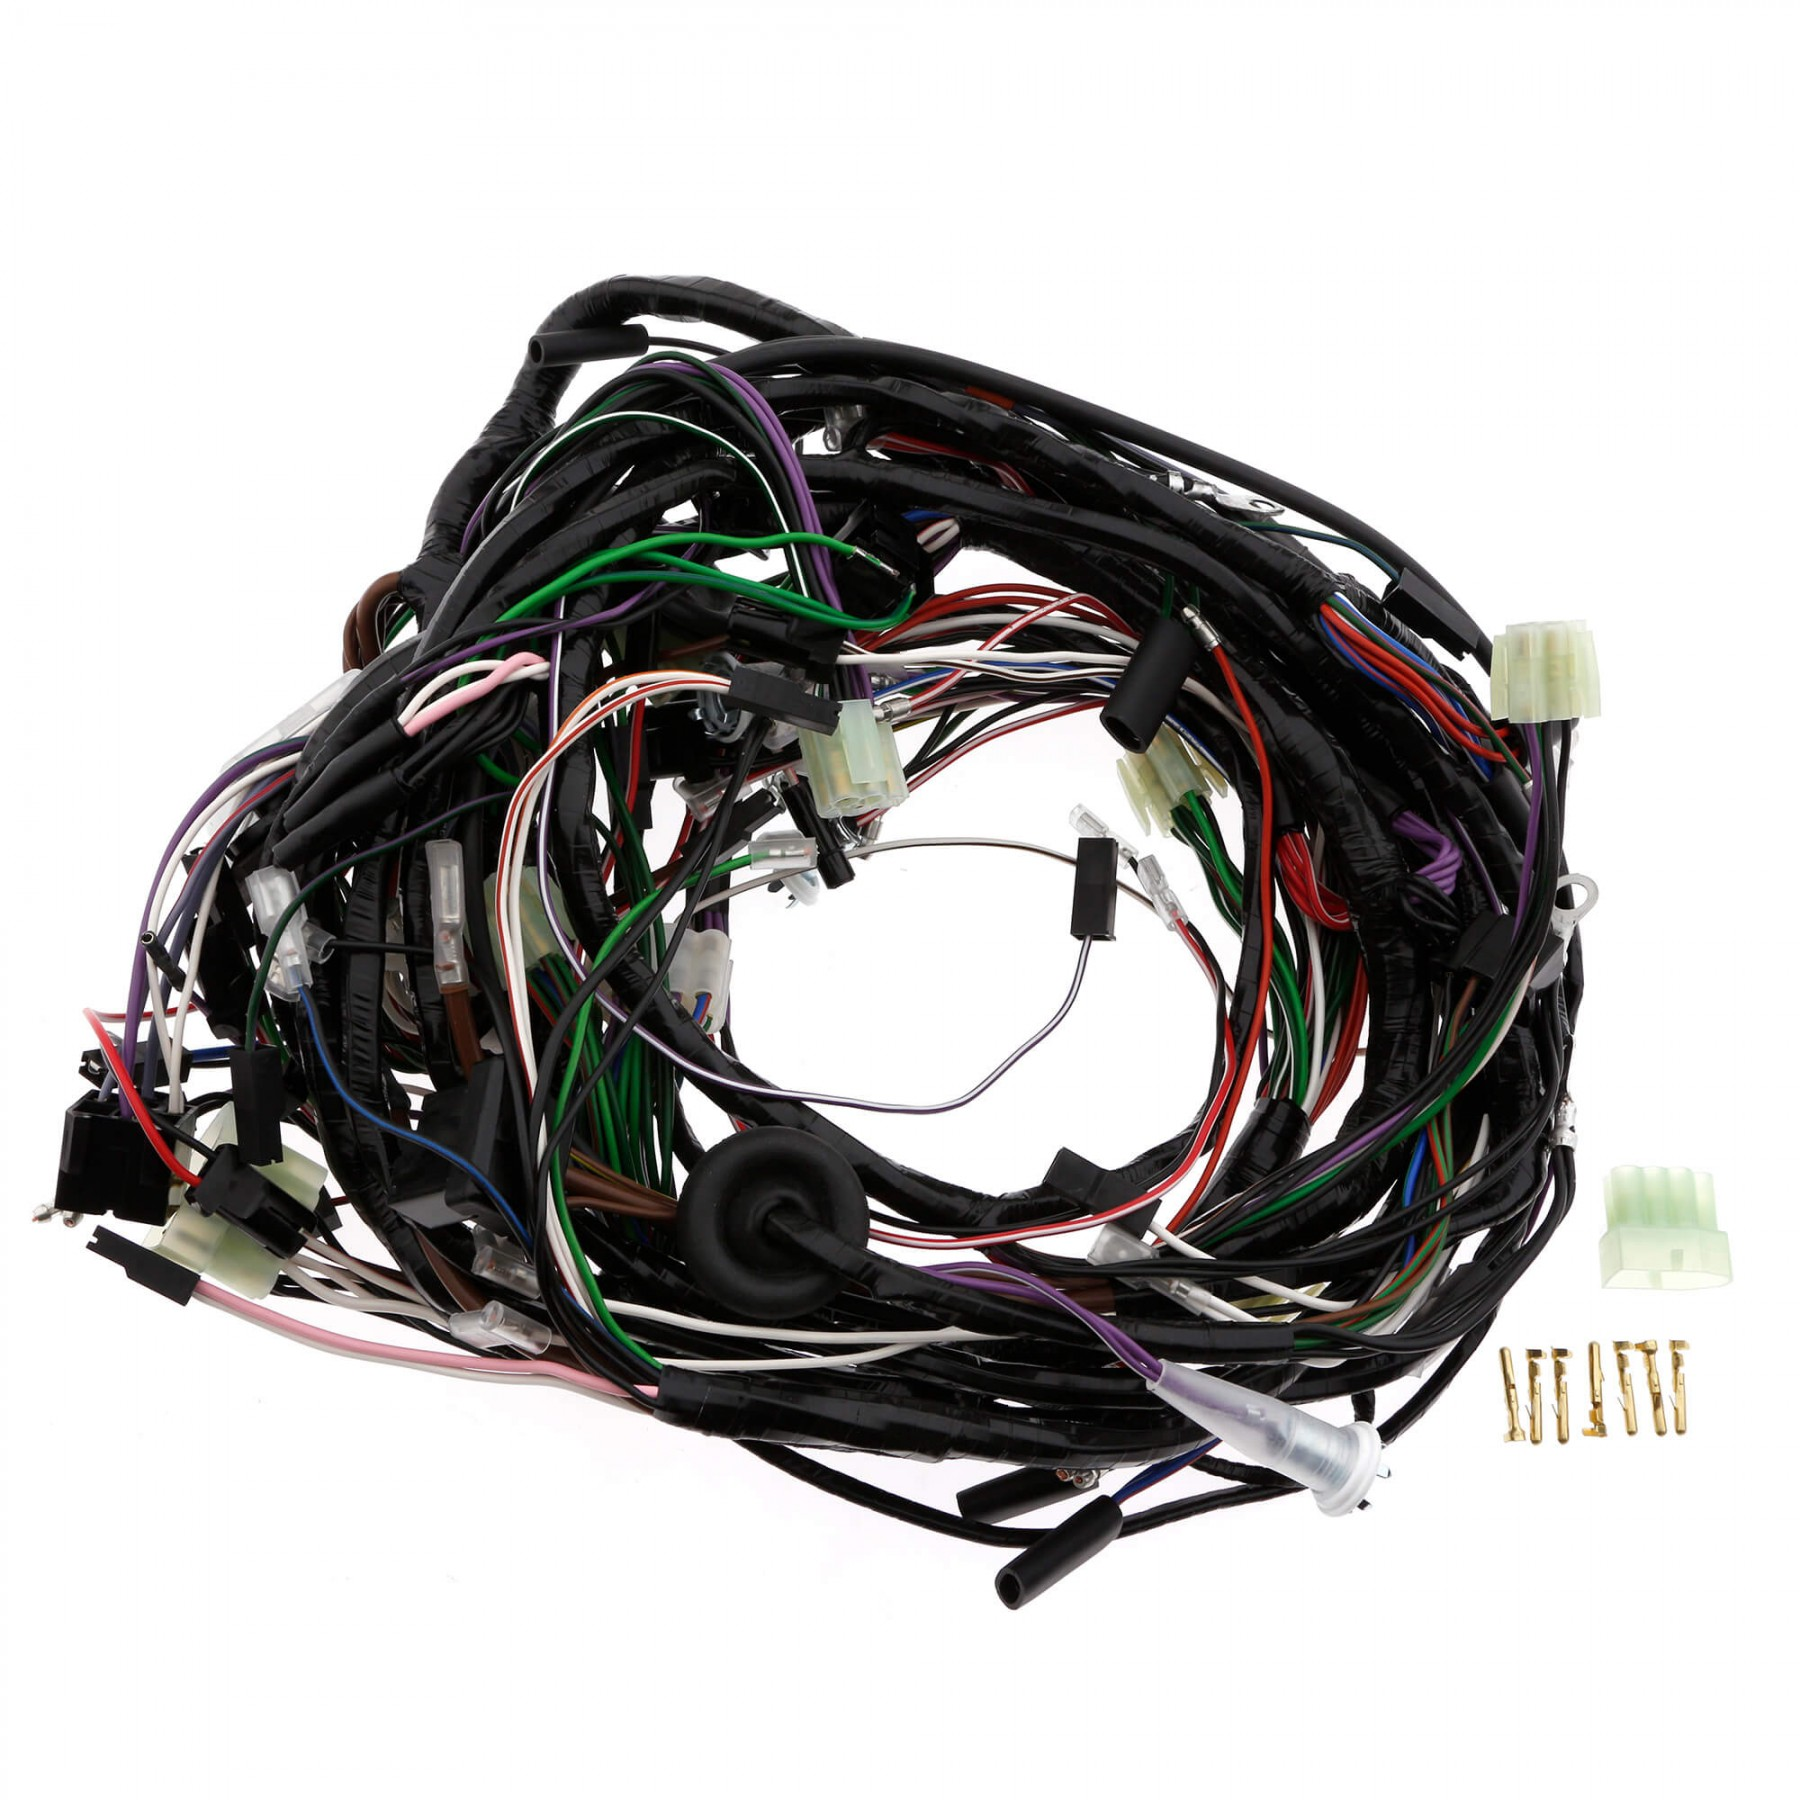 1972 Tr6 Wiring Schematic FULL Version HD Quality Wiring ...